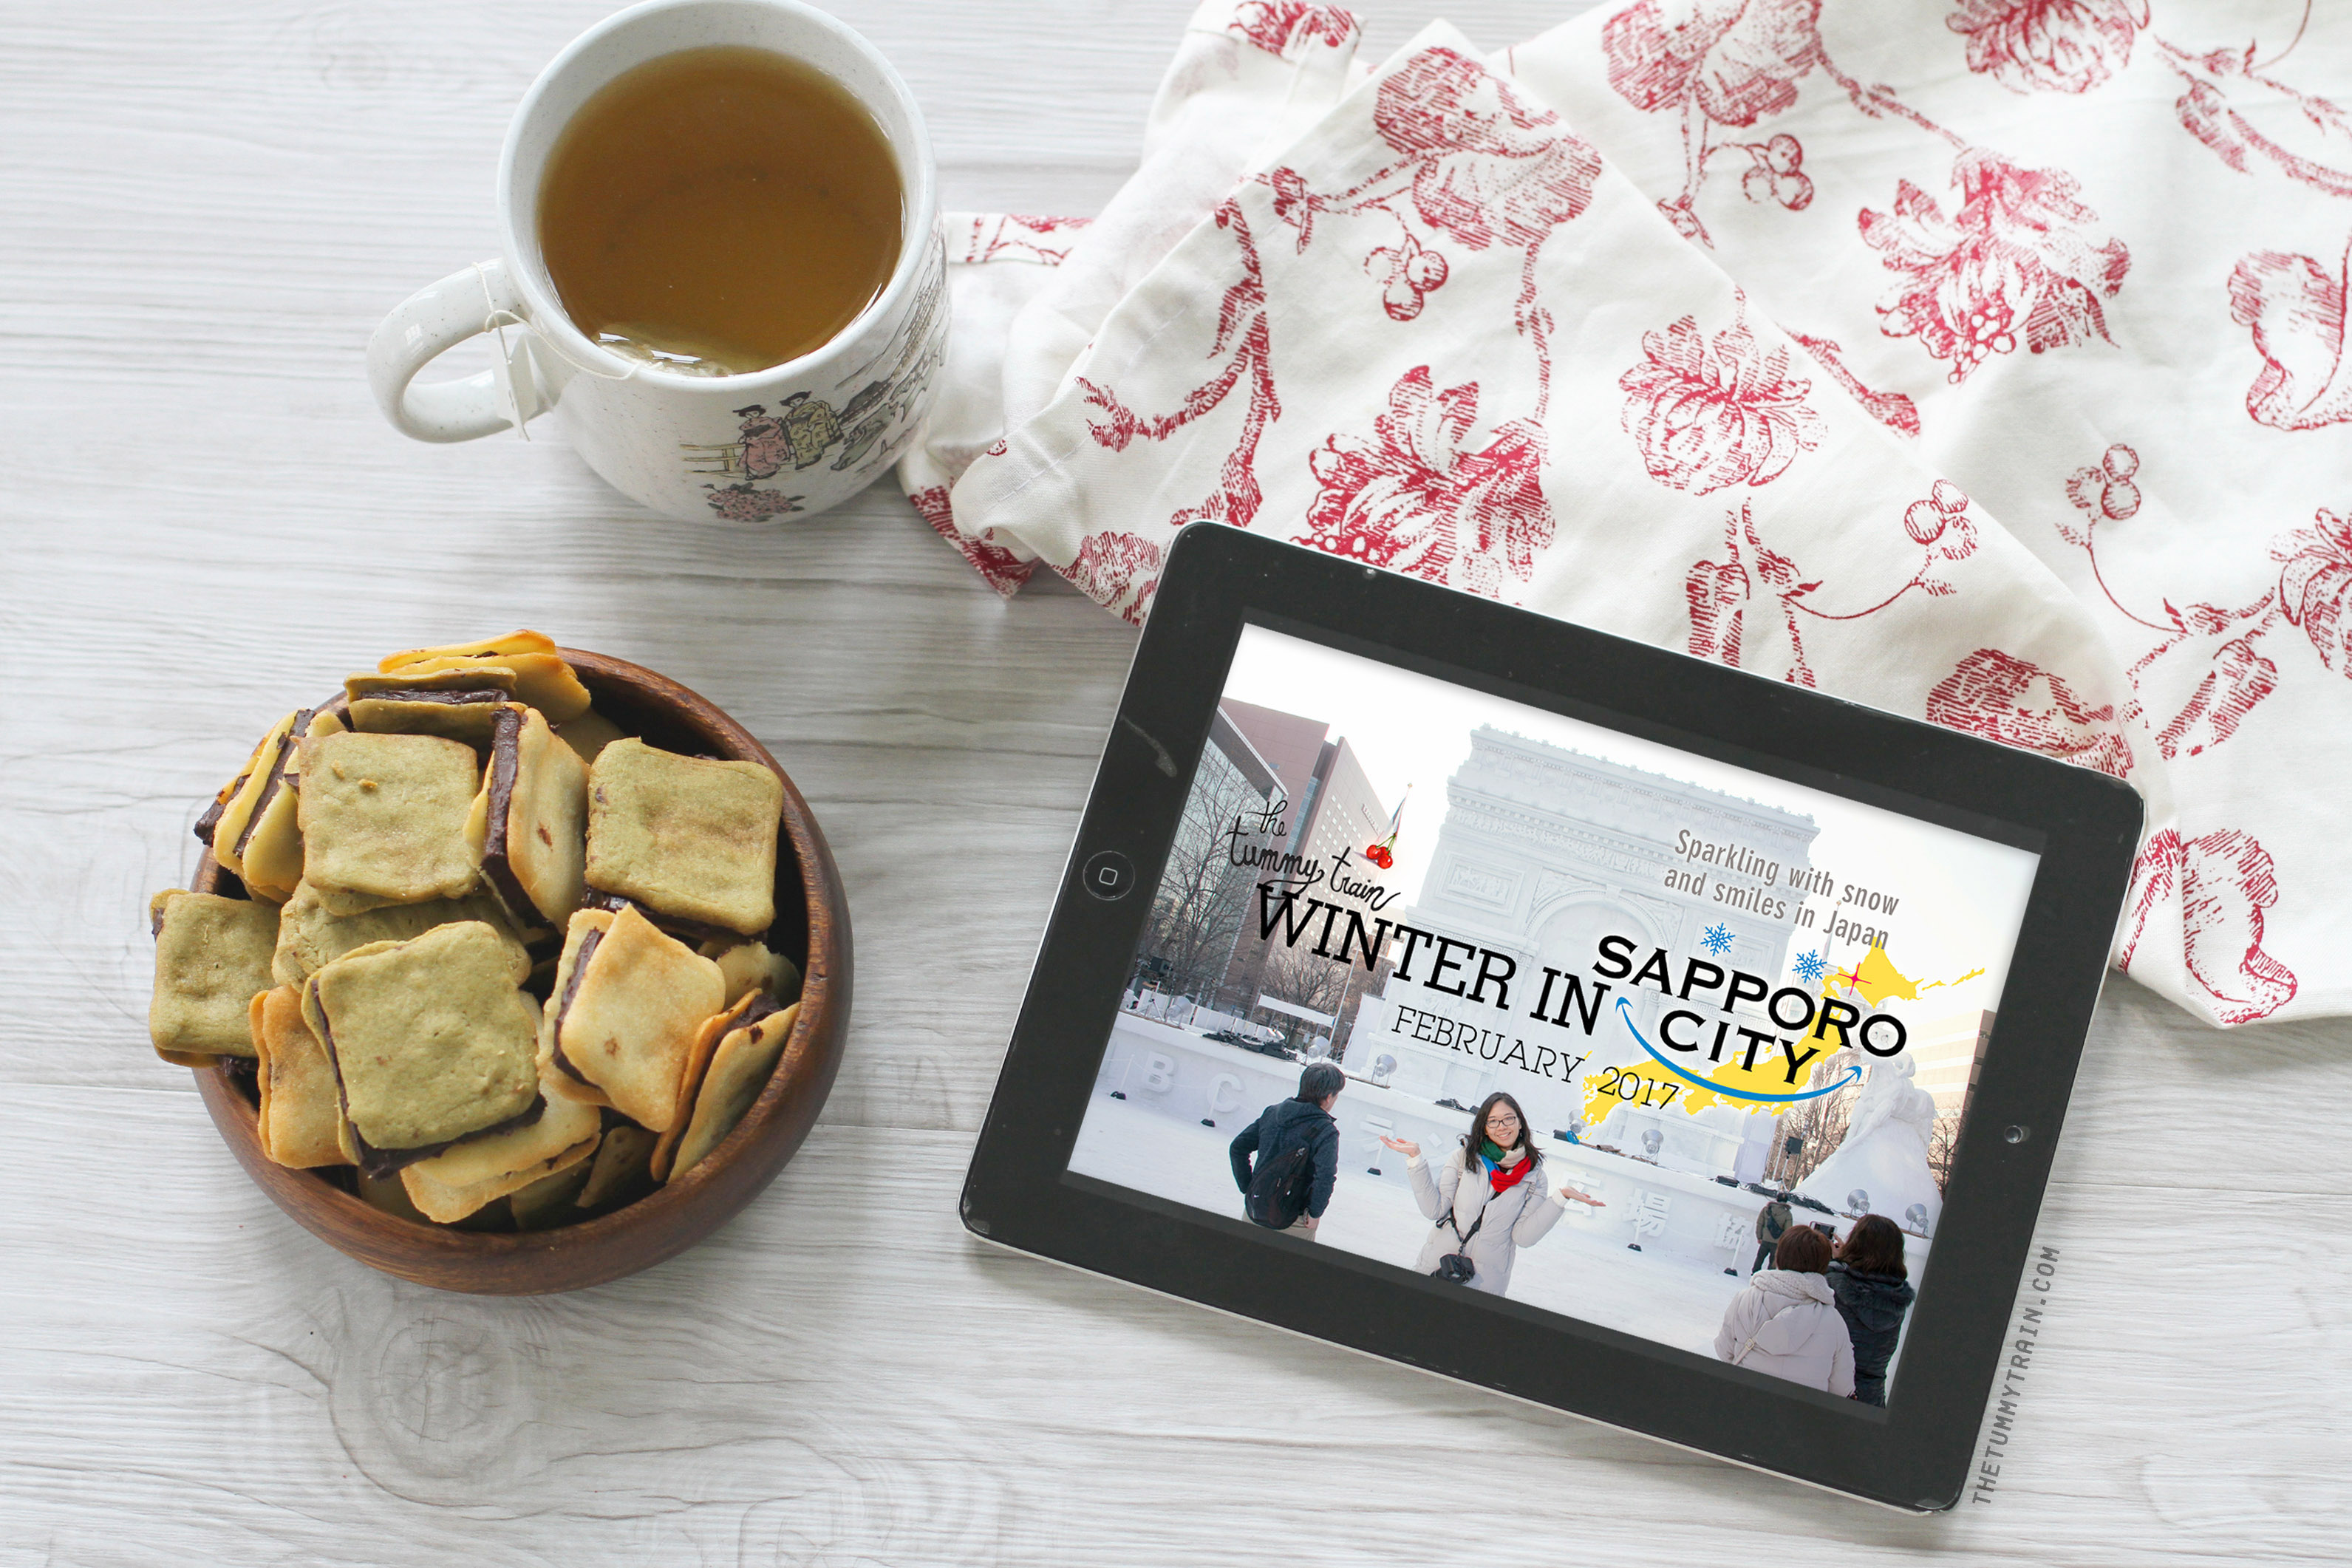 LDC Cover 1 - Sapporo Memories in a Travel Video + Homemade Langue de Chat Recipe